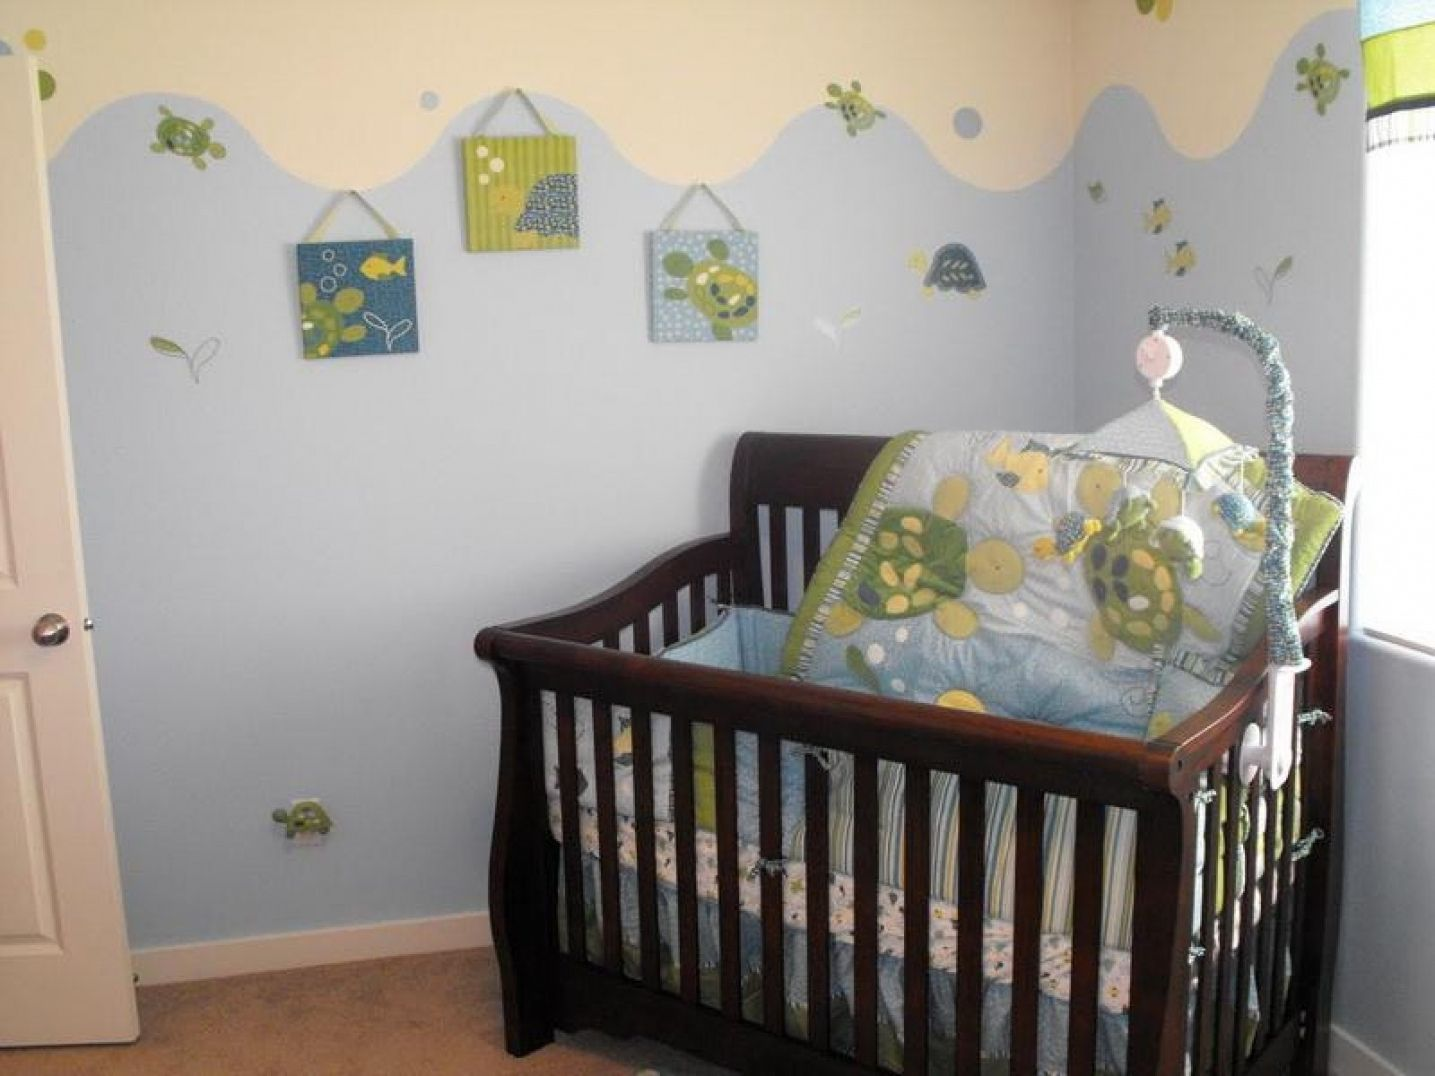 70 easy baby room ideas best way to paint wood furniture check